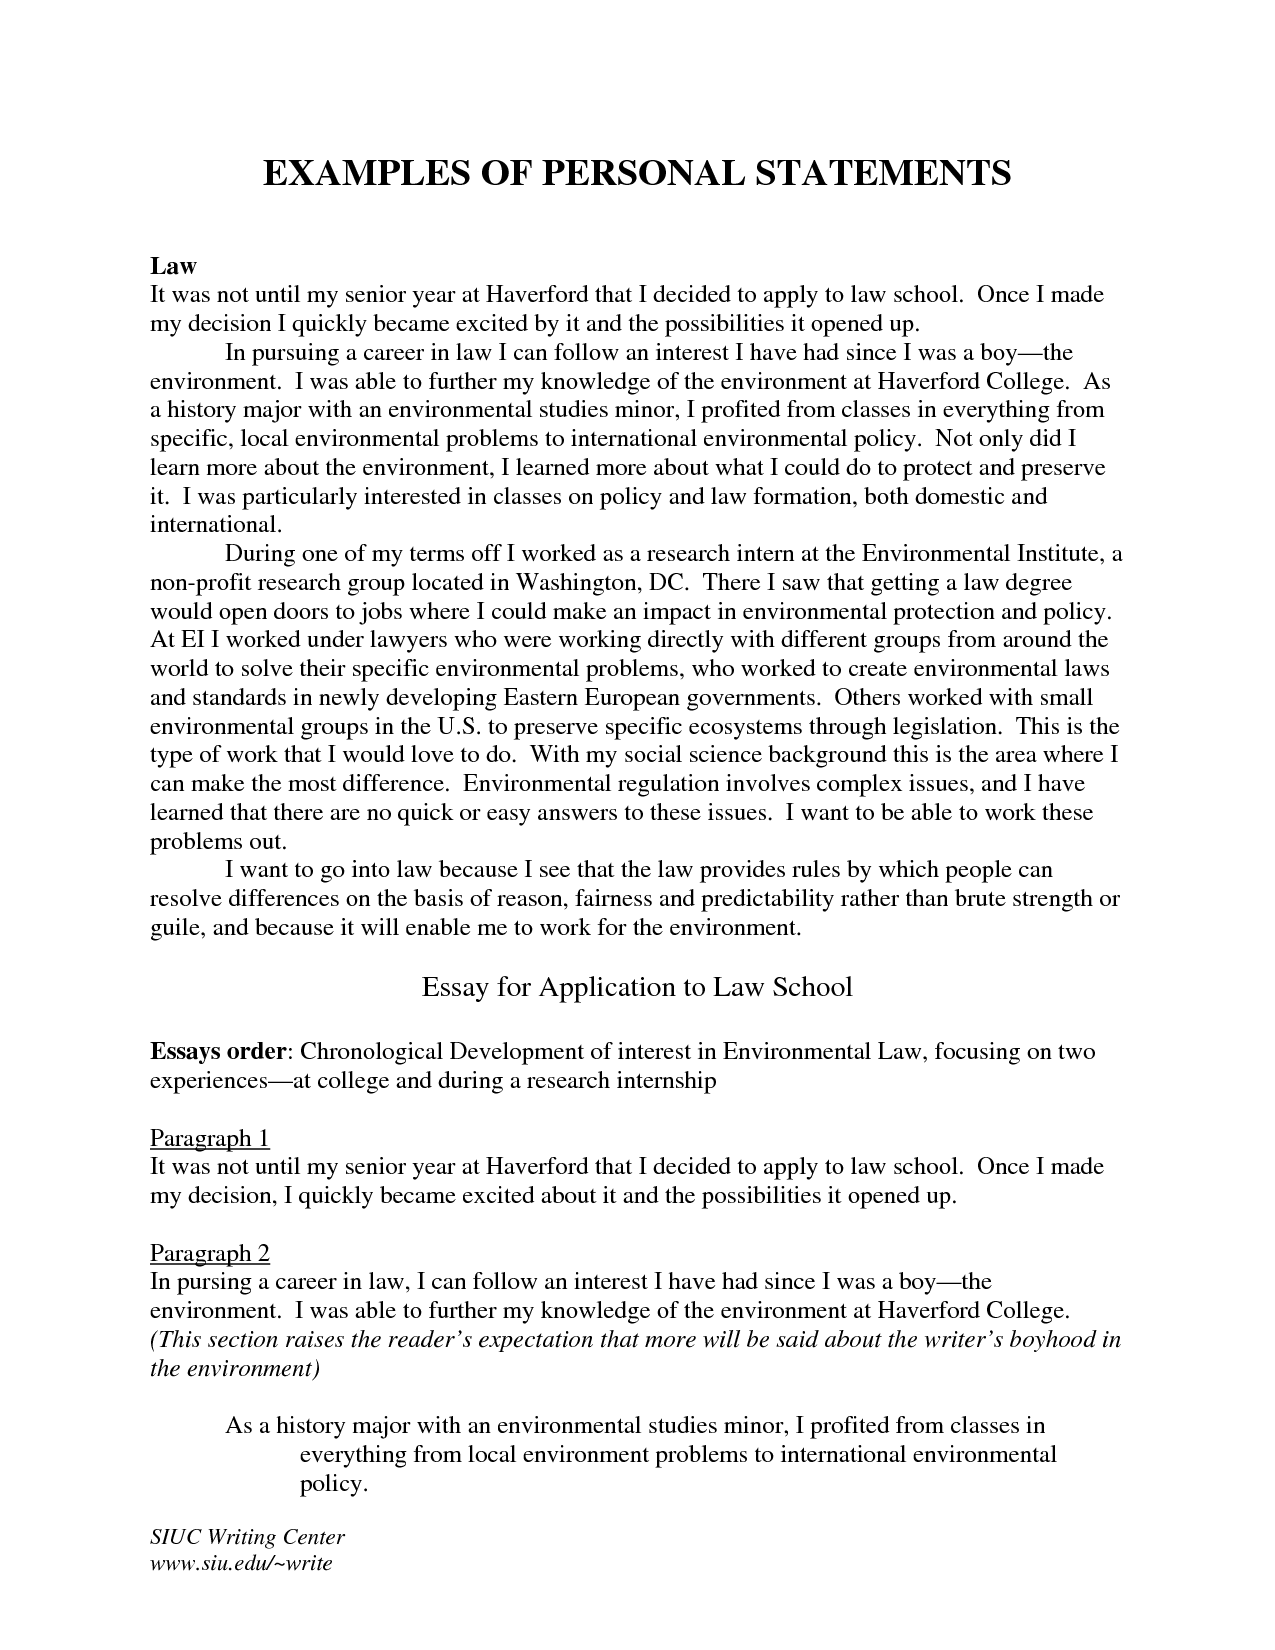 La Haine Essay Personal Statement High School Best Essay Writing Service also Compare And Contrast Essay Personal Statement High School  Personal Statement  Pinterest  Where Is A Thesis Statement In An Essay